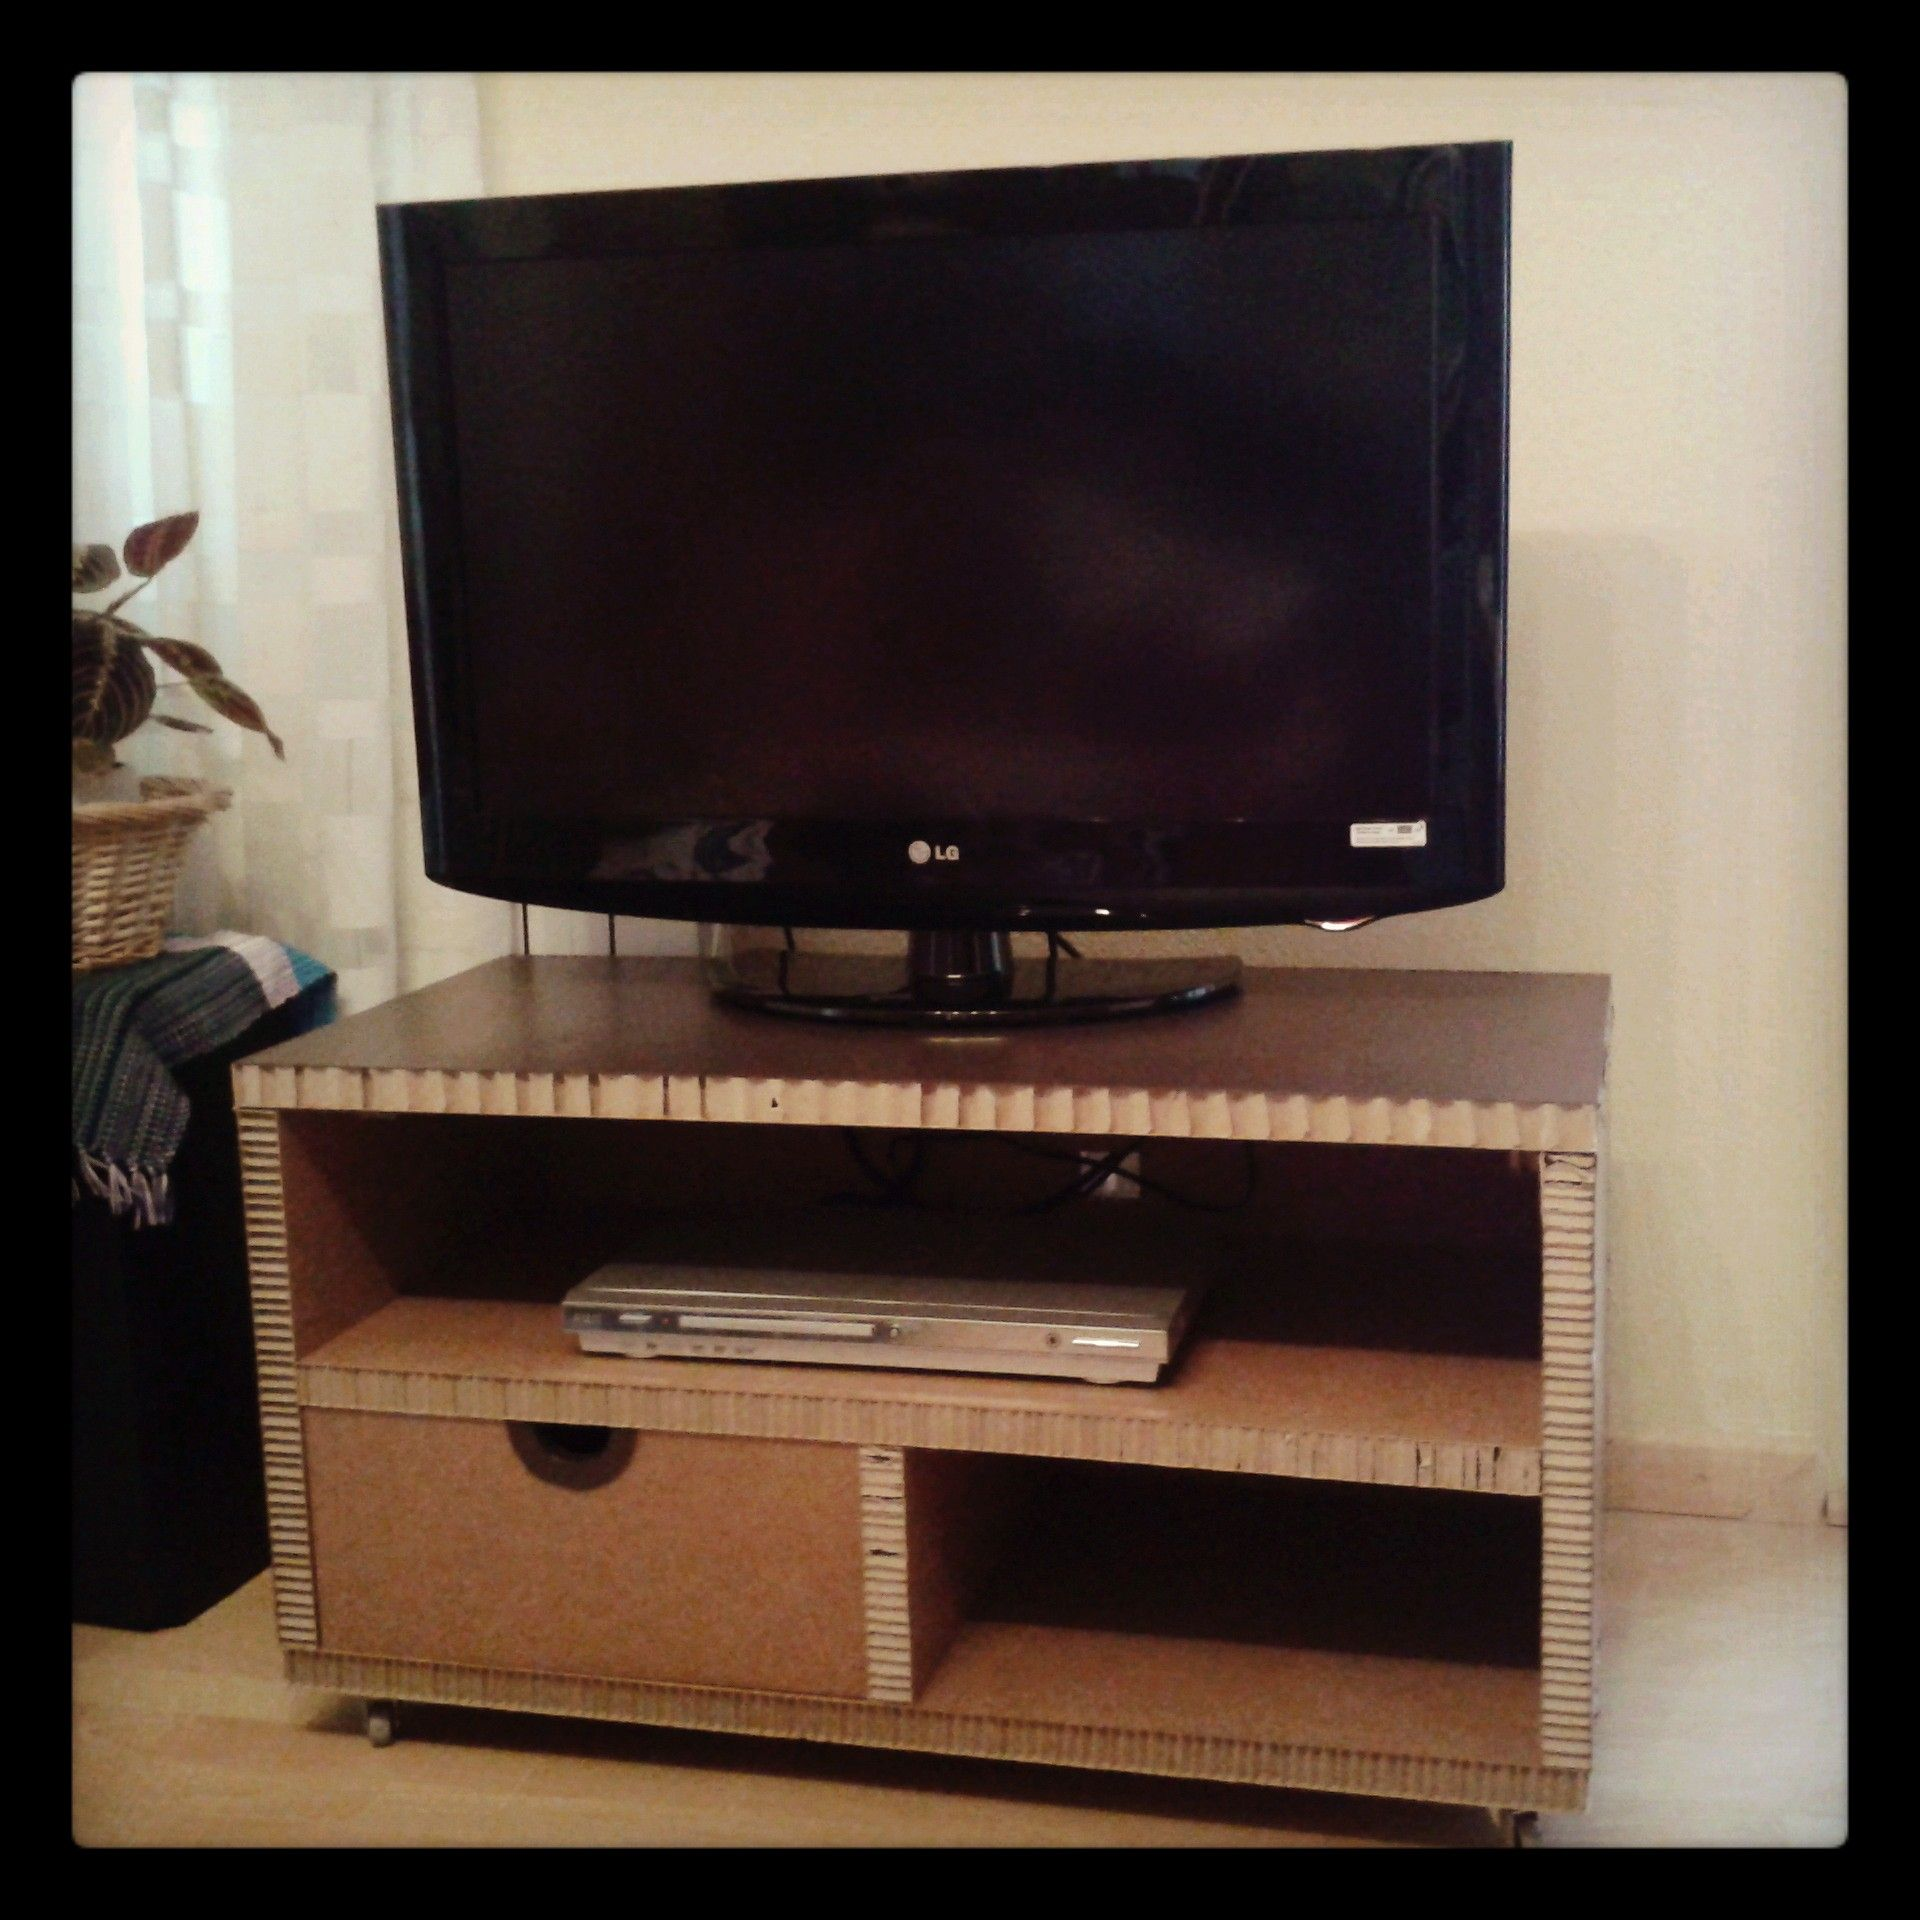 Mesa de cart n para tv con caj n y ruedas muebles de for Mesas de tv con ruedas